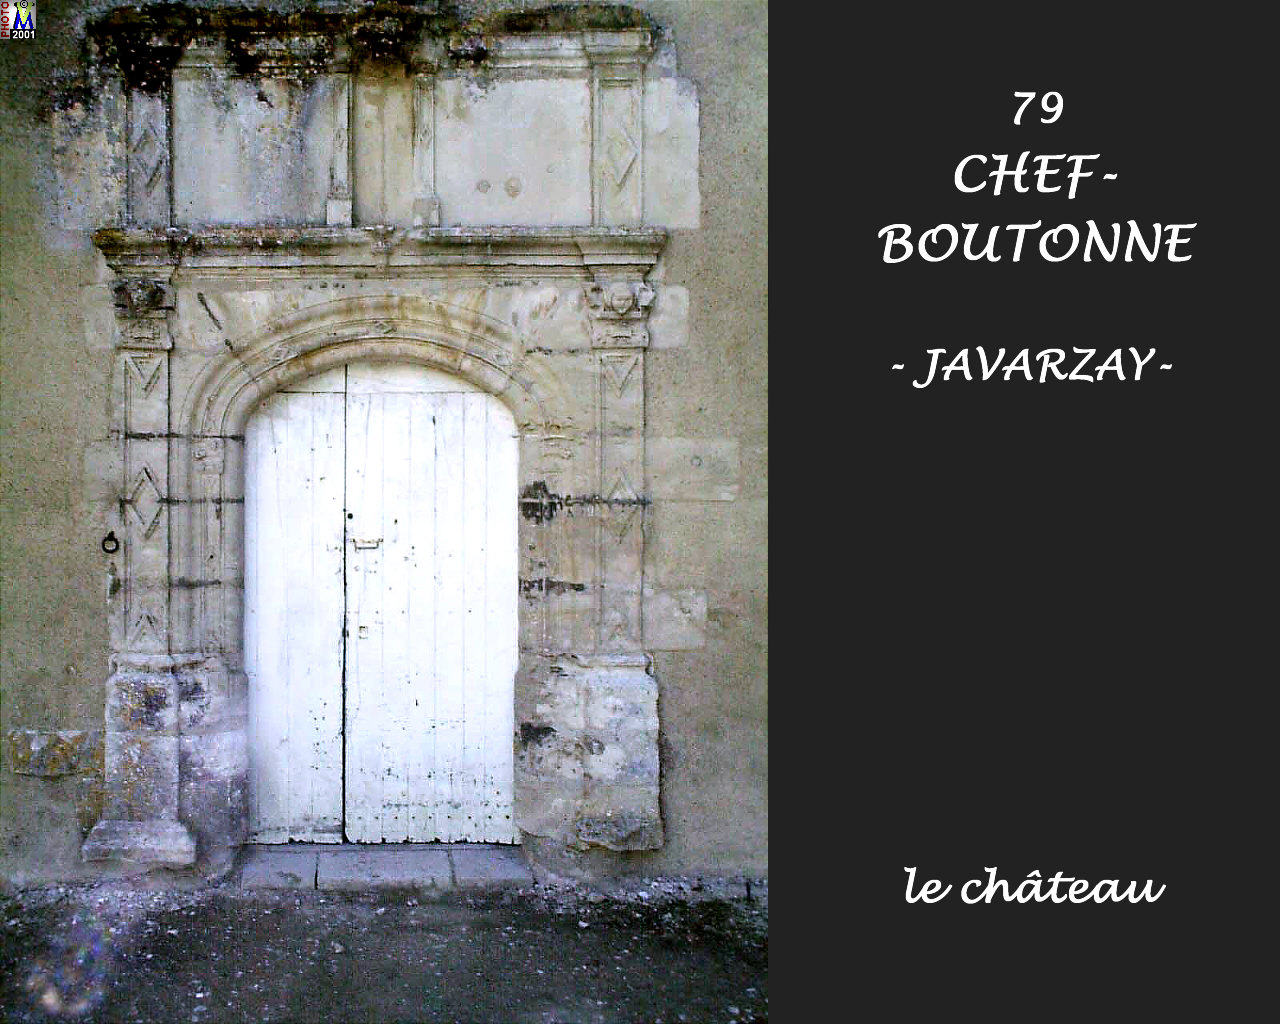 79CHEF-BOUTONNE_chateauJ_110.jpg